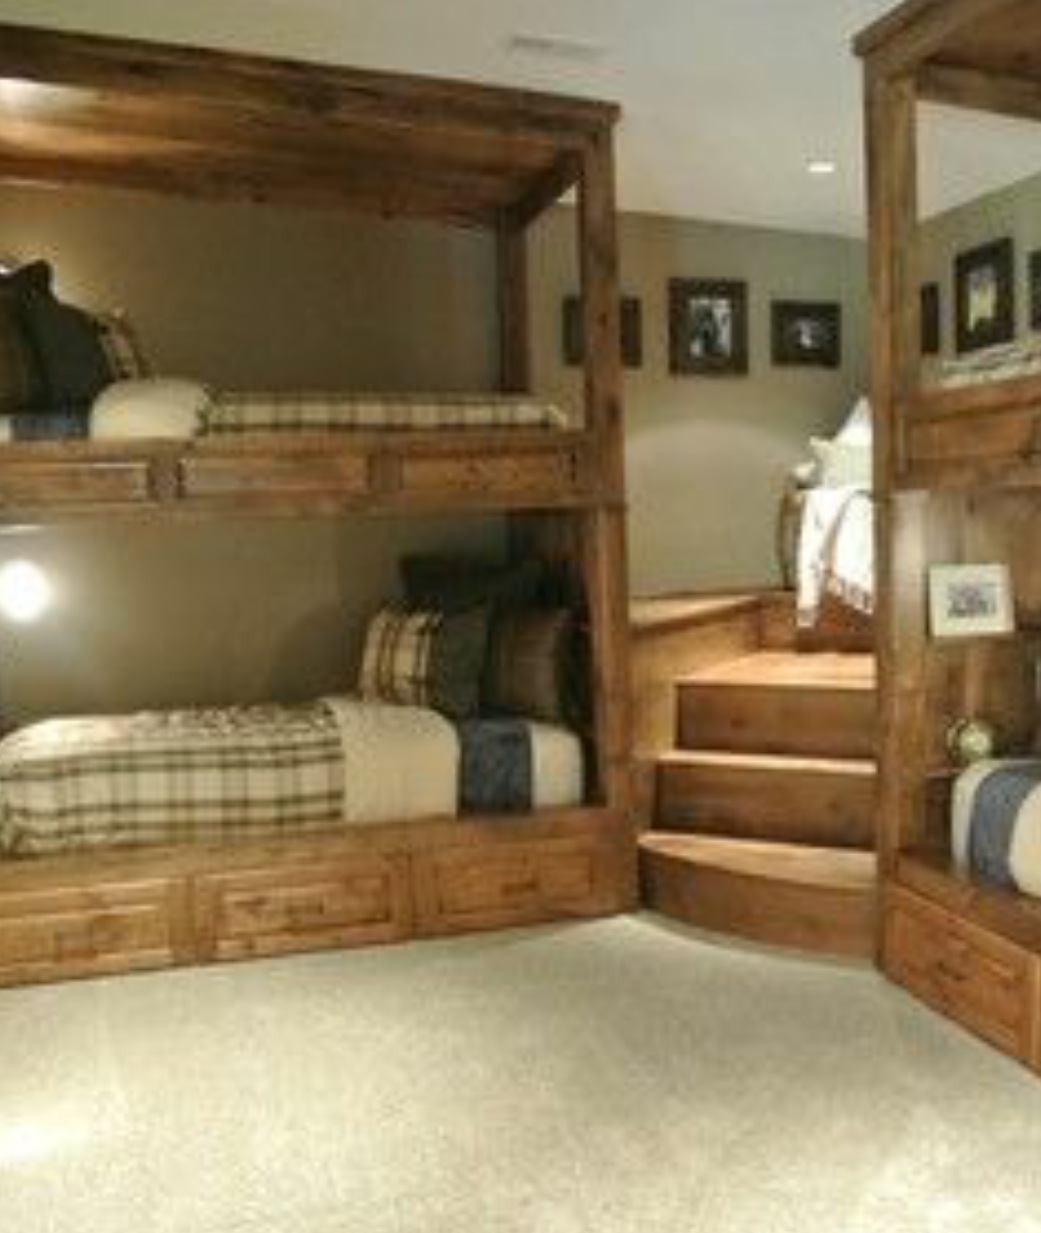 Cool loft bed ideas  Bunk beds  vacaction home ideas  Pinterest  Bunk bed Bedrooms